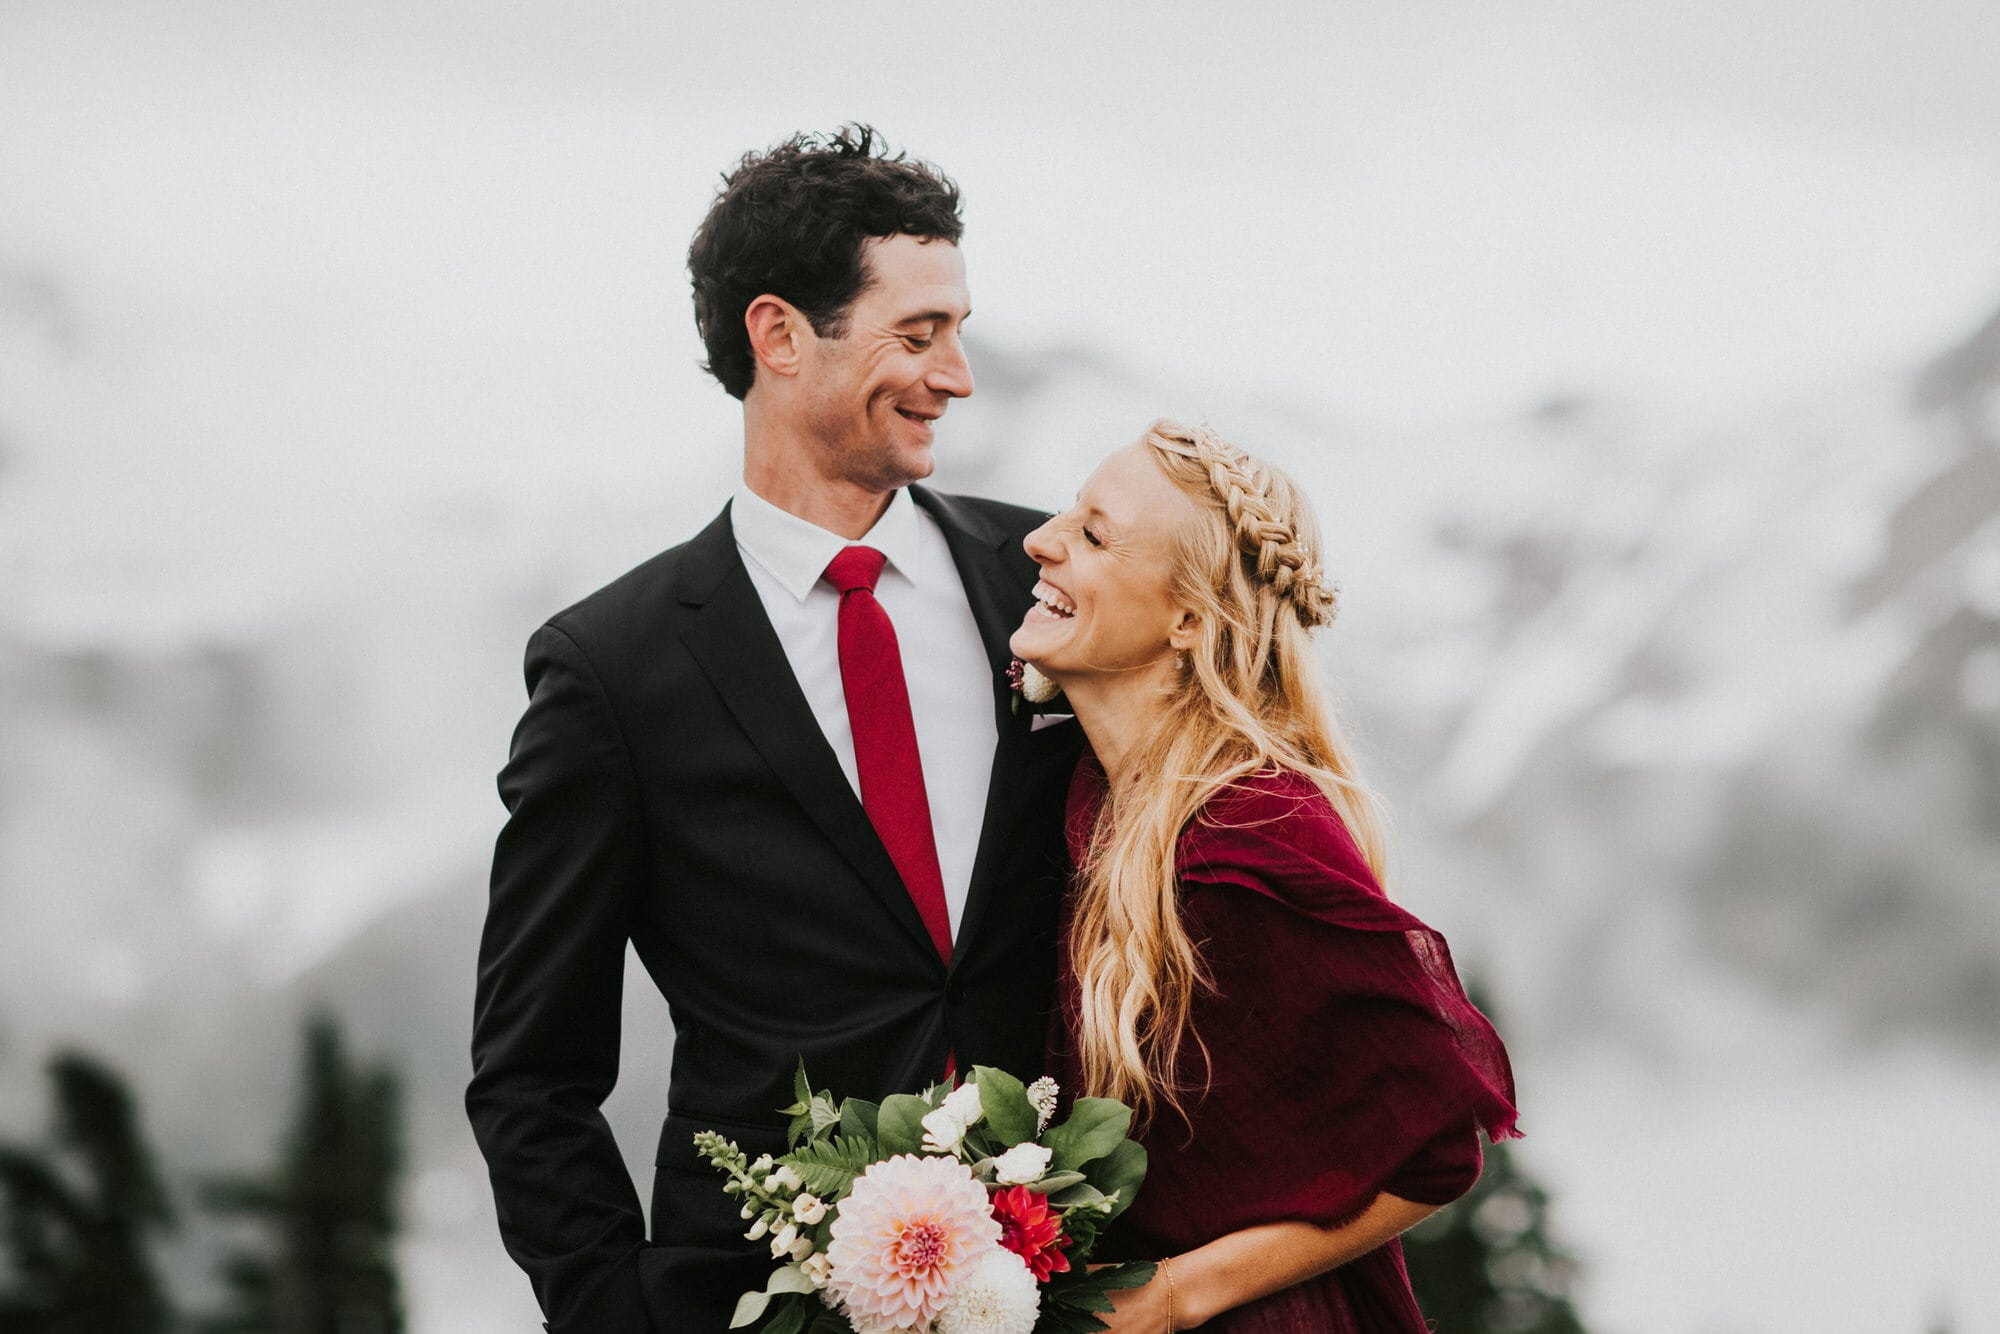 bride and groom laughing together before intimate wedding